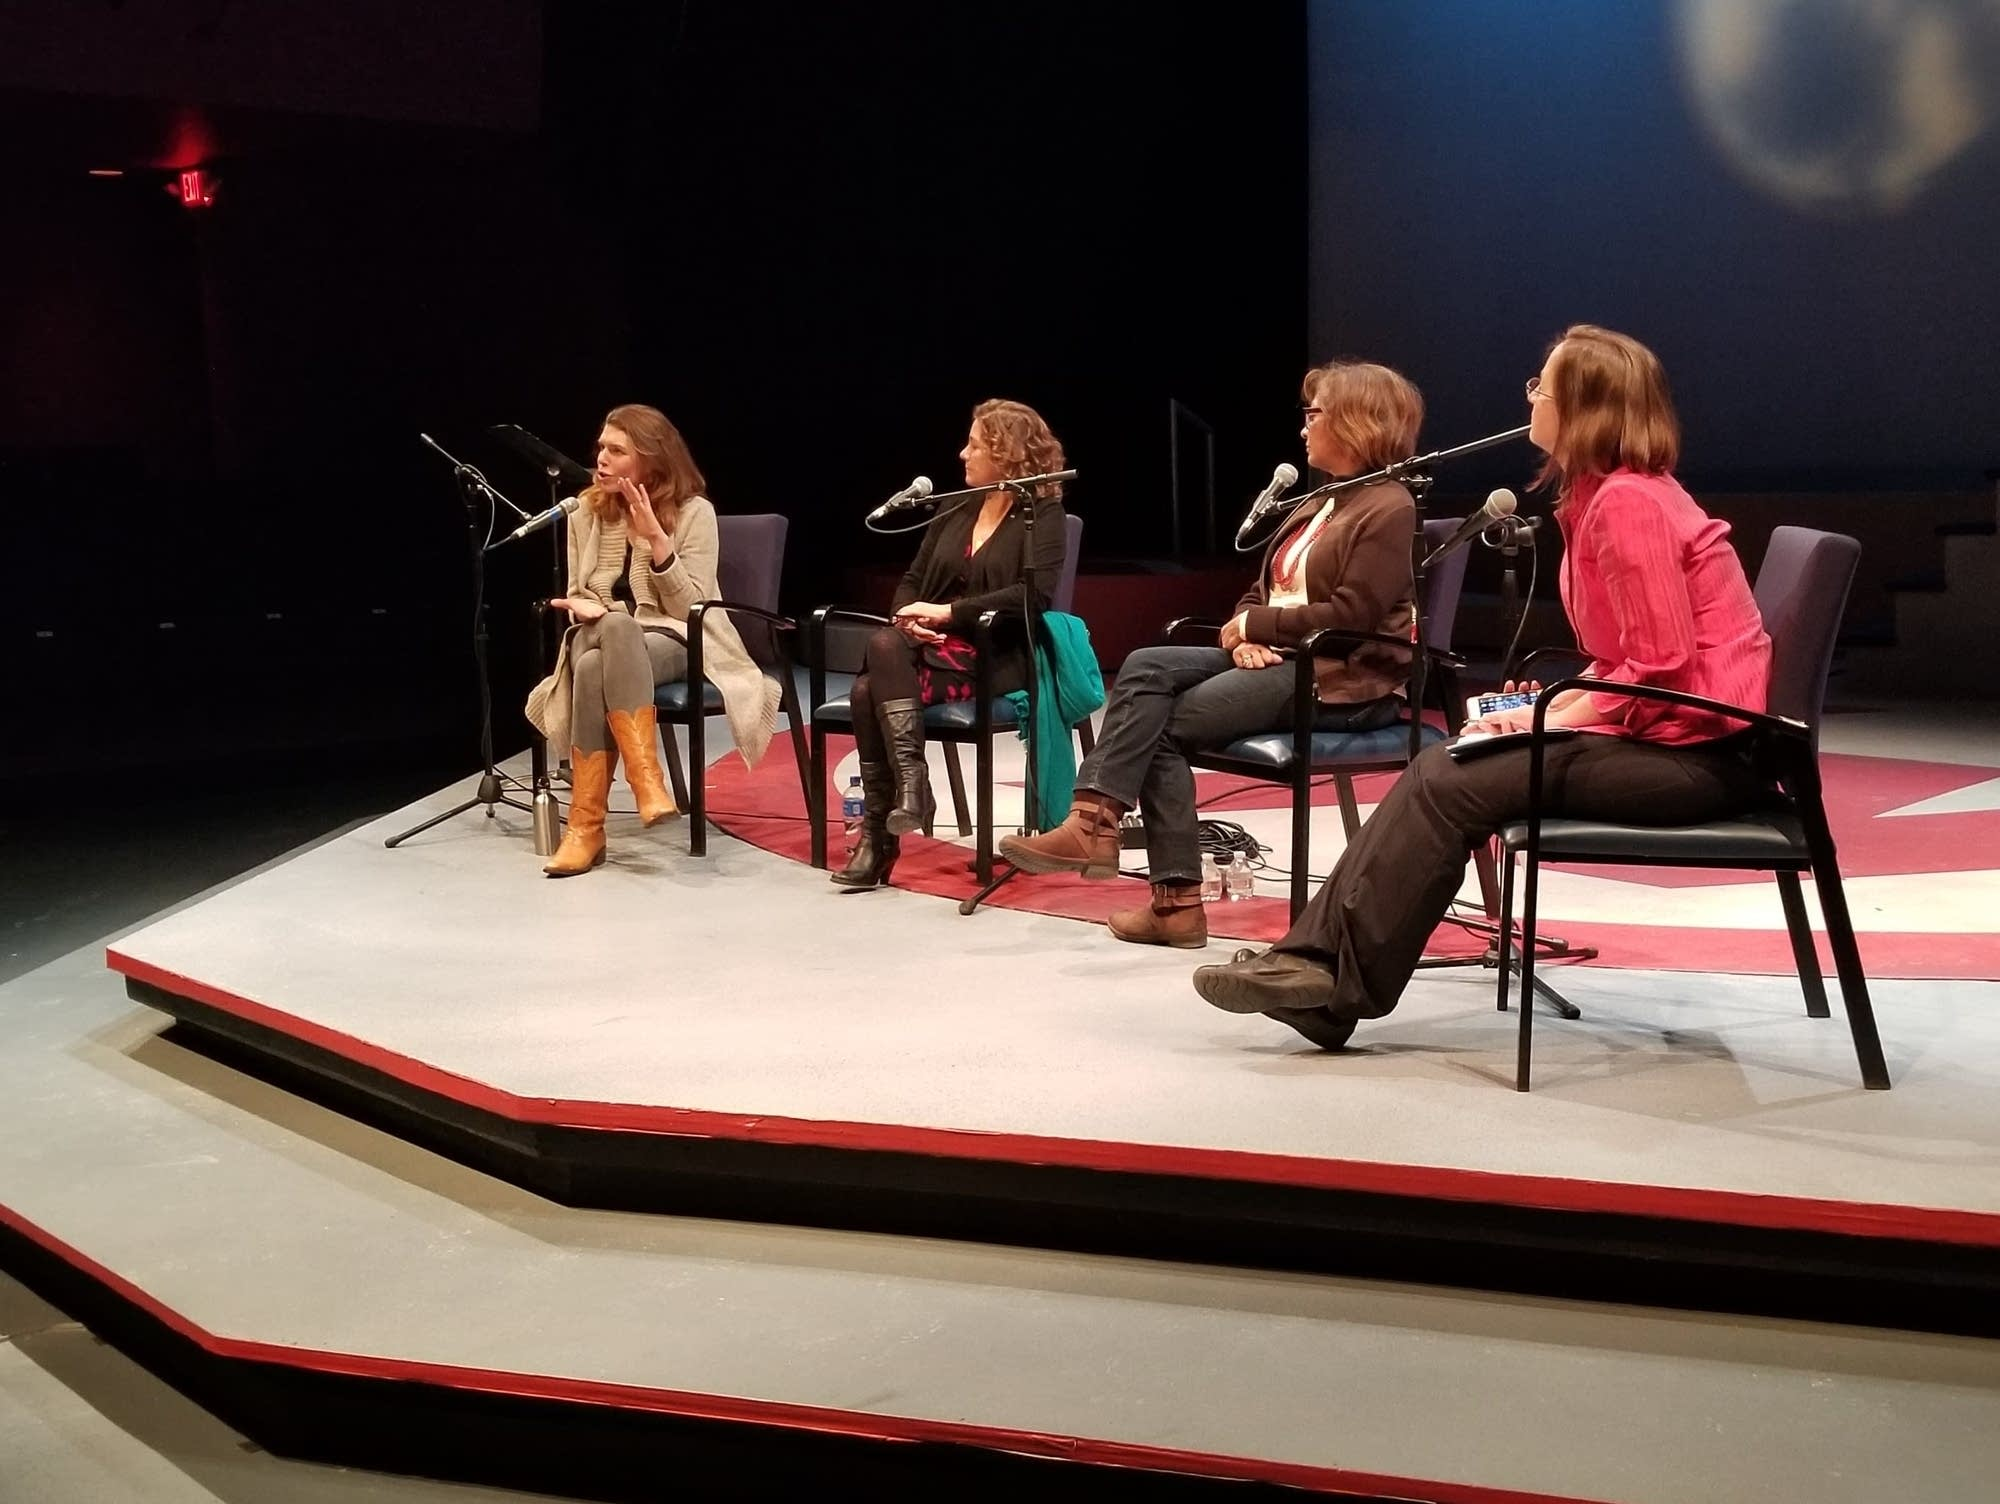 Reporter Marianne Combs hosts a discussion with women theater directors